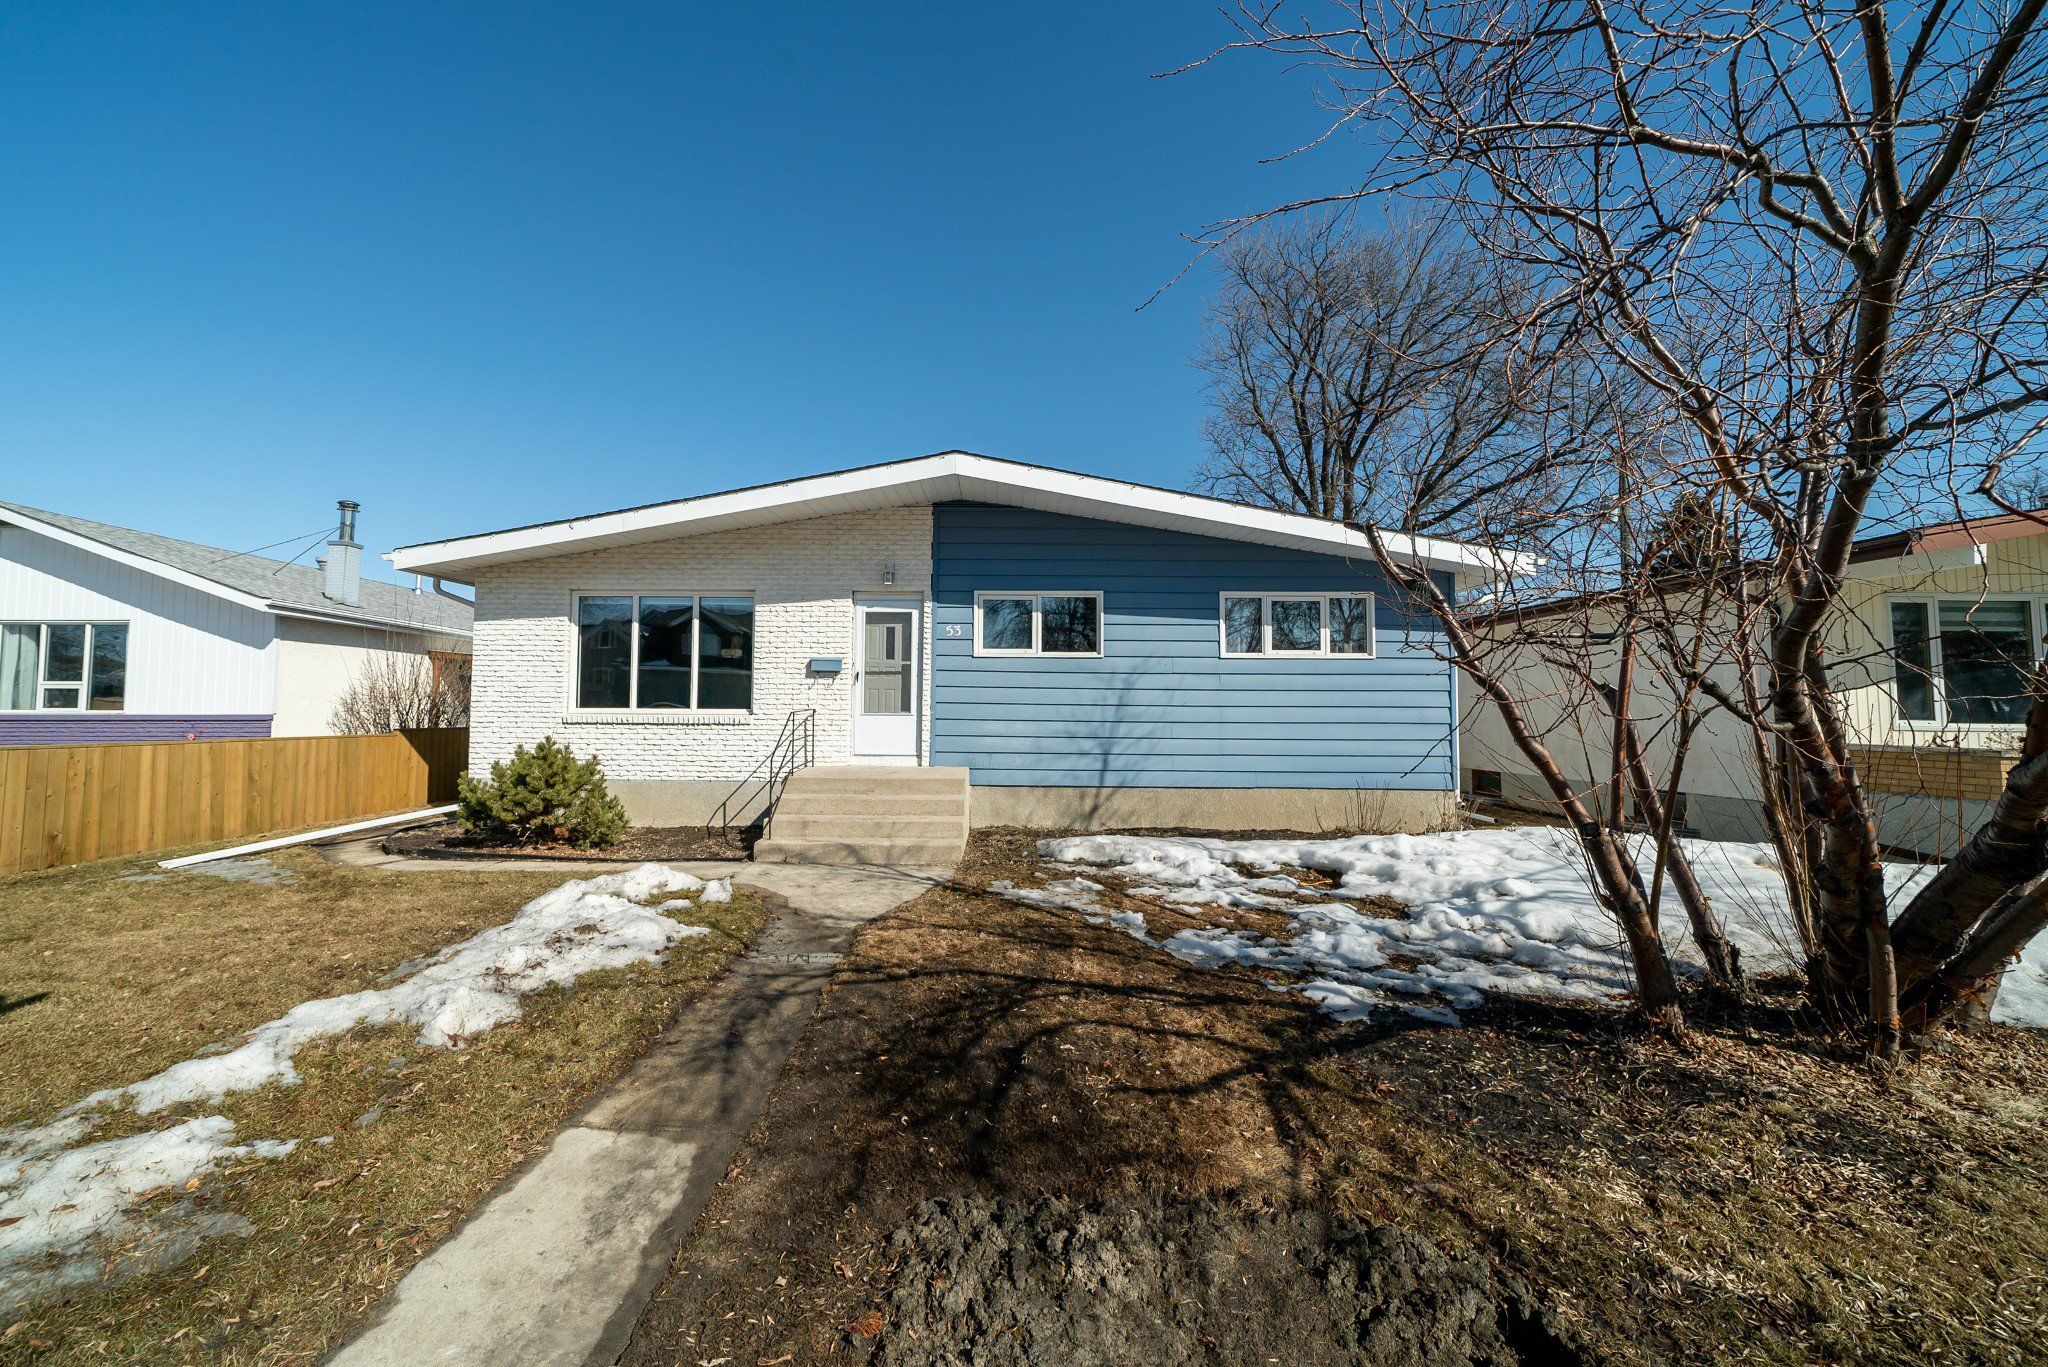 Main Photo: 53 Sansome Avenue in Winnipeg: Westwood Residential for sale (5G)  : MLS®# 202006568